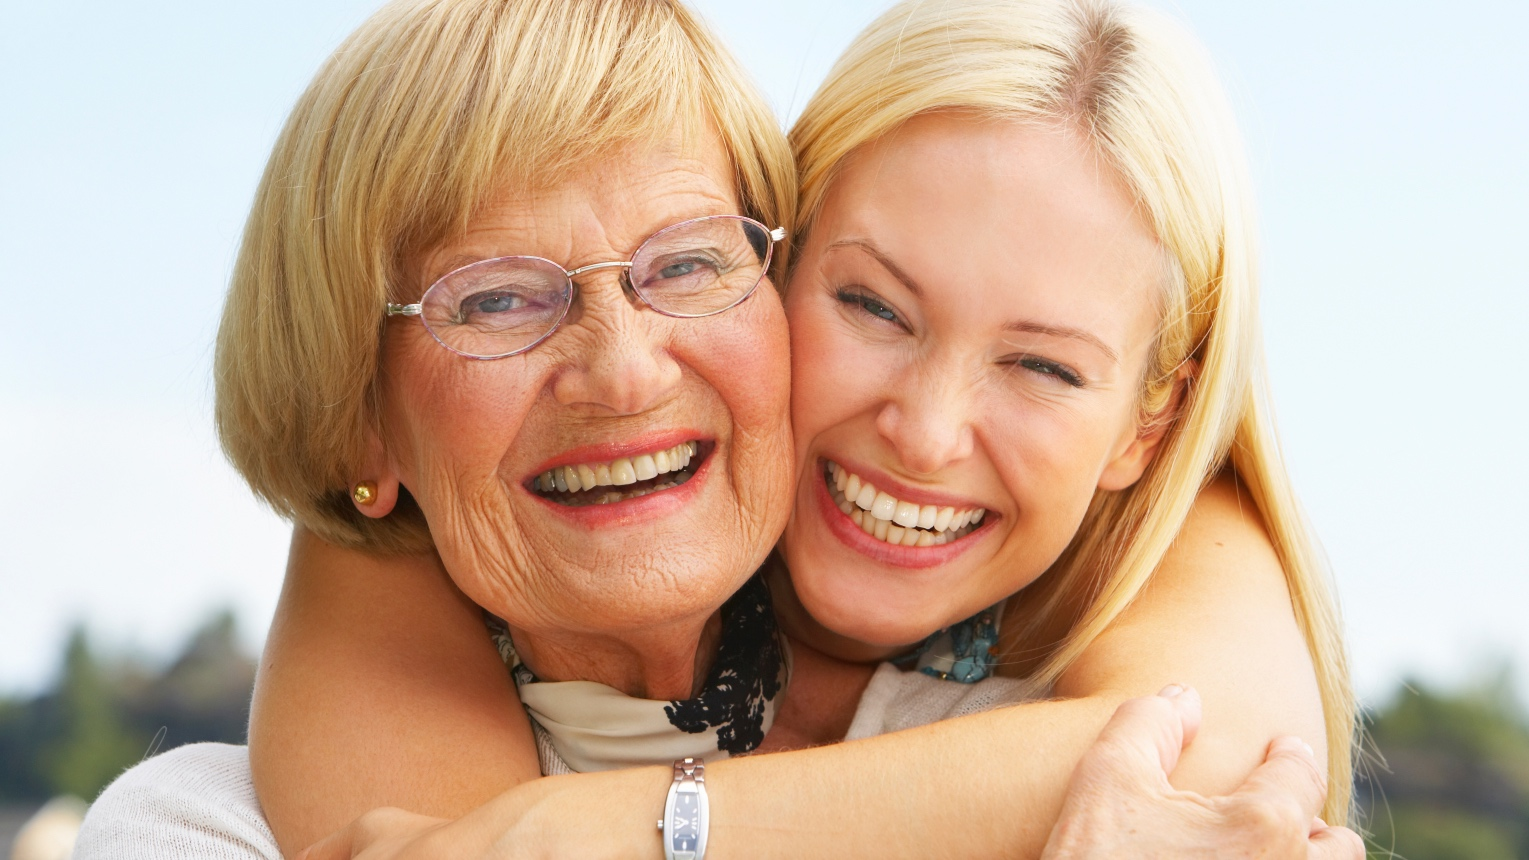 Senior and Daughter smiling.jpg